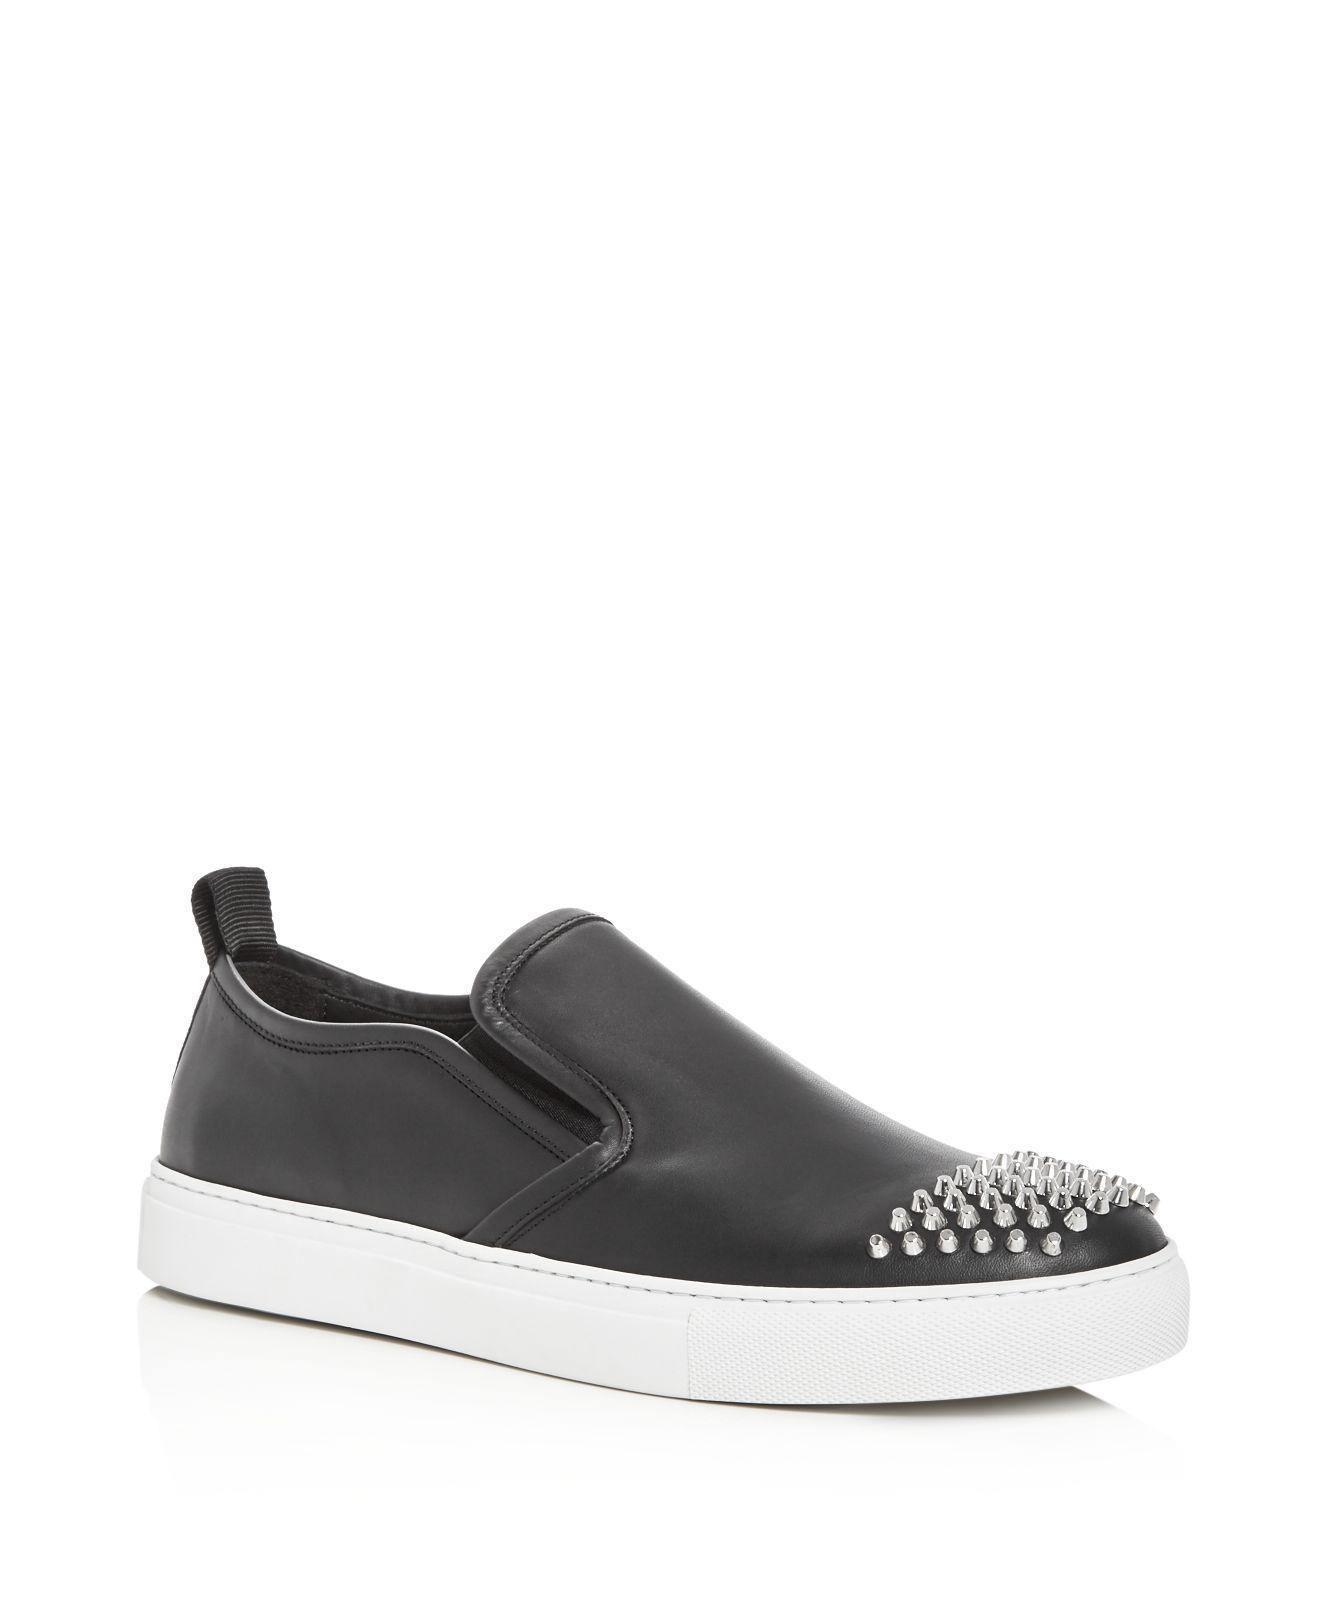 c4c72100327 Gucci Mcq Alexander Mcqueen Chris Studded Leather Slip-on Sneakers ...